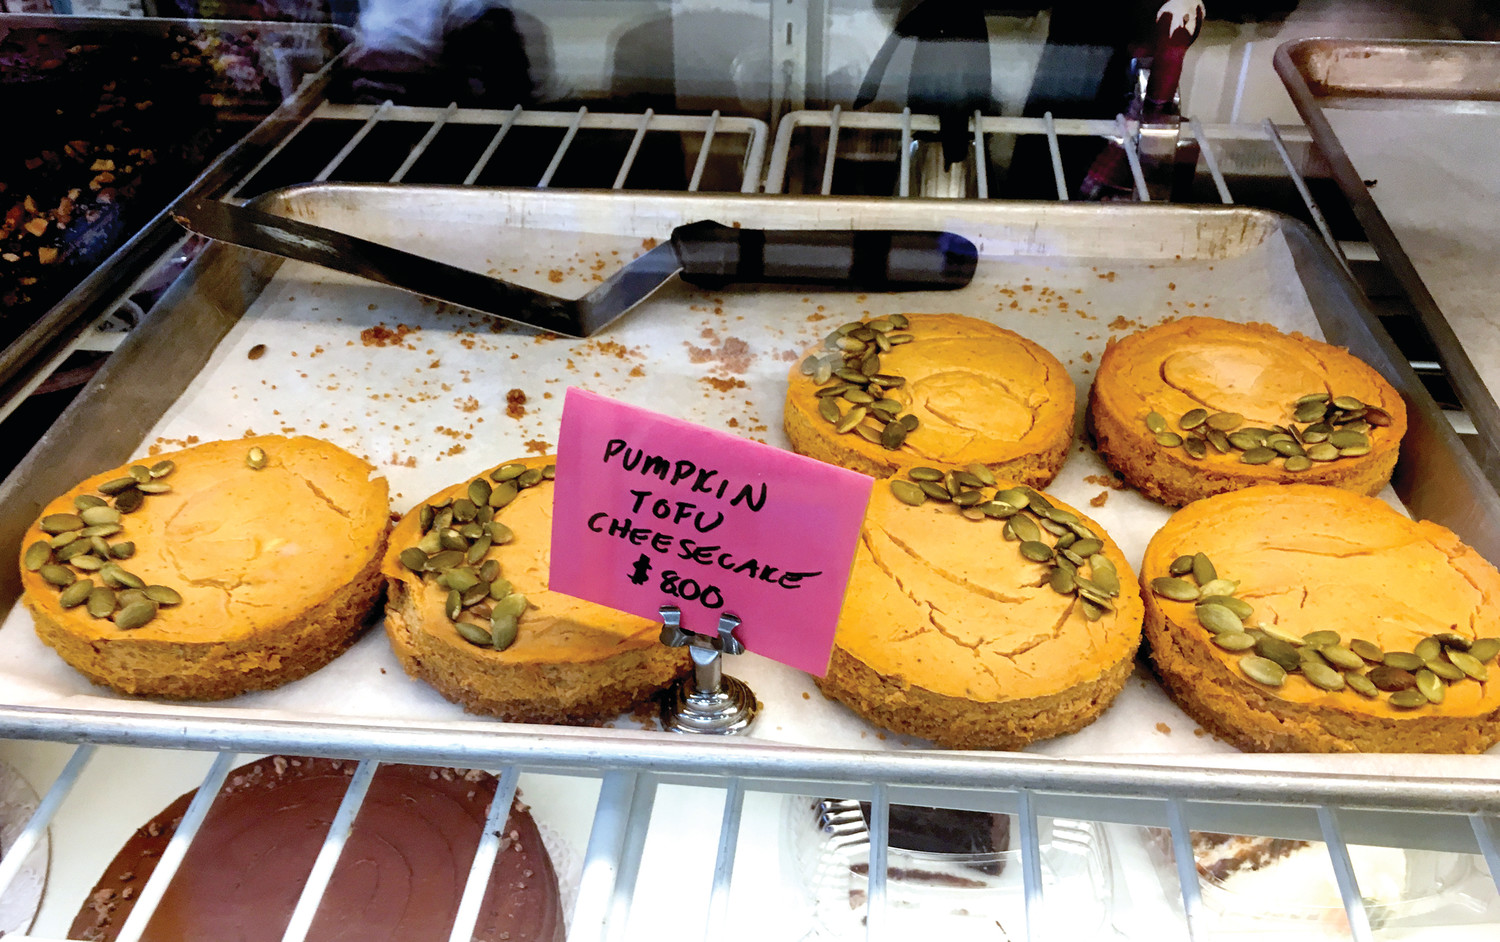 Pumpkin tofu cheesecakes from Wildflour Bakery in Pawtucket, for the fall-loving vegan in your life.